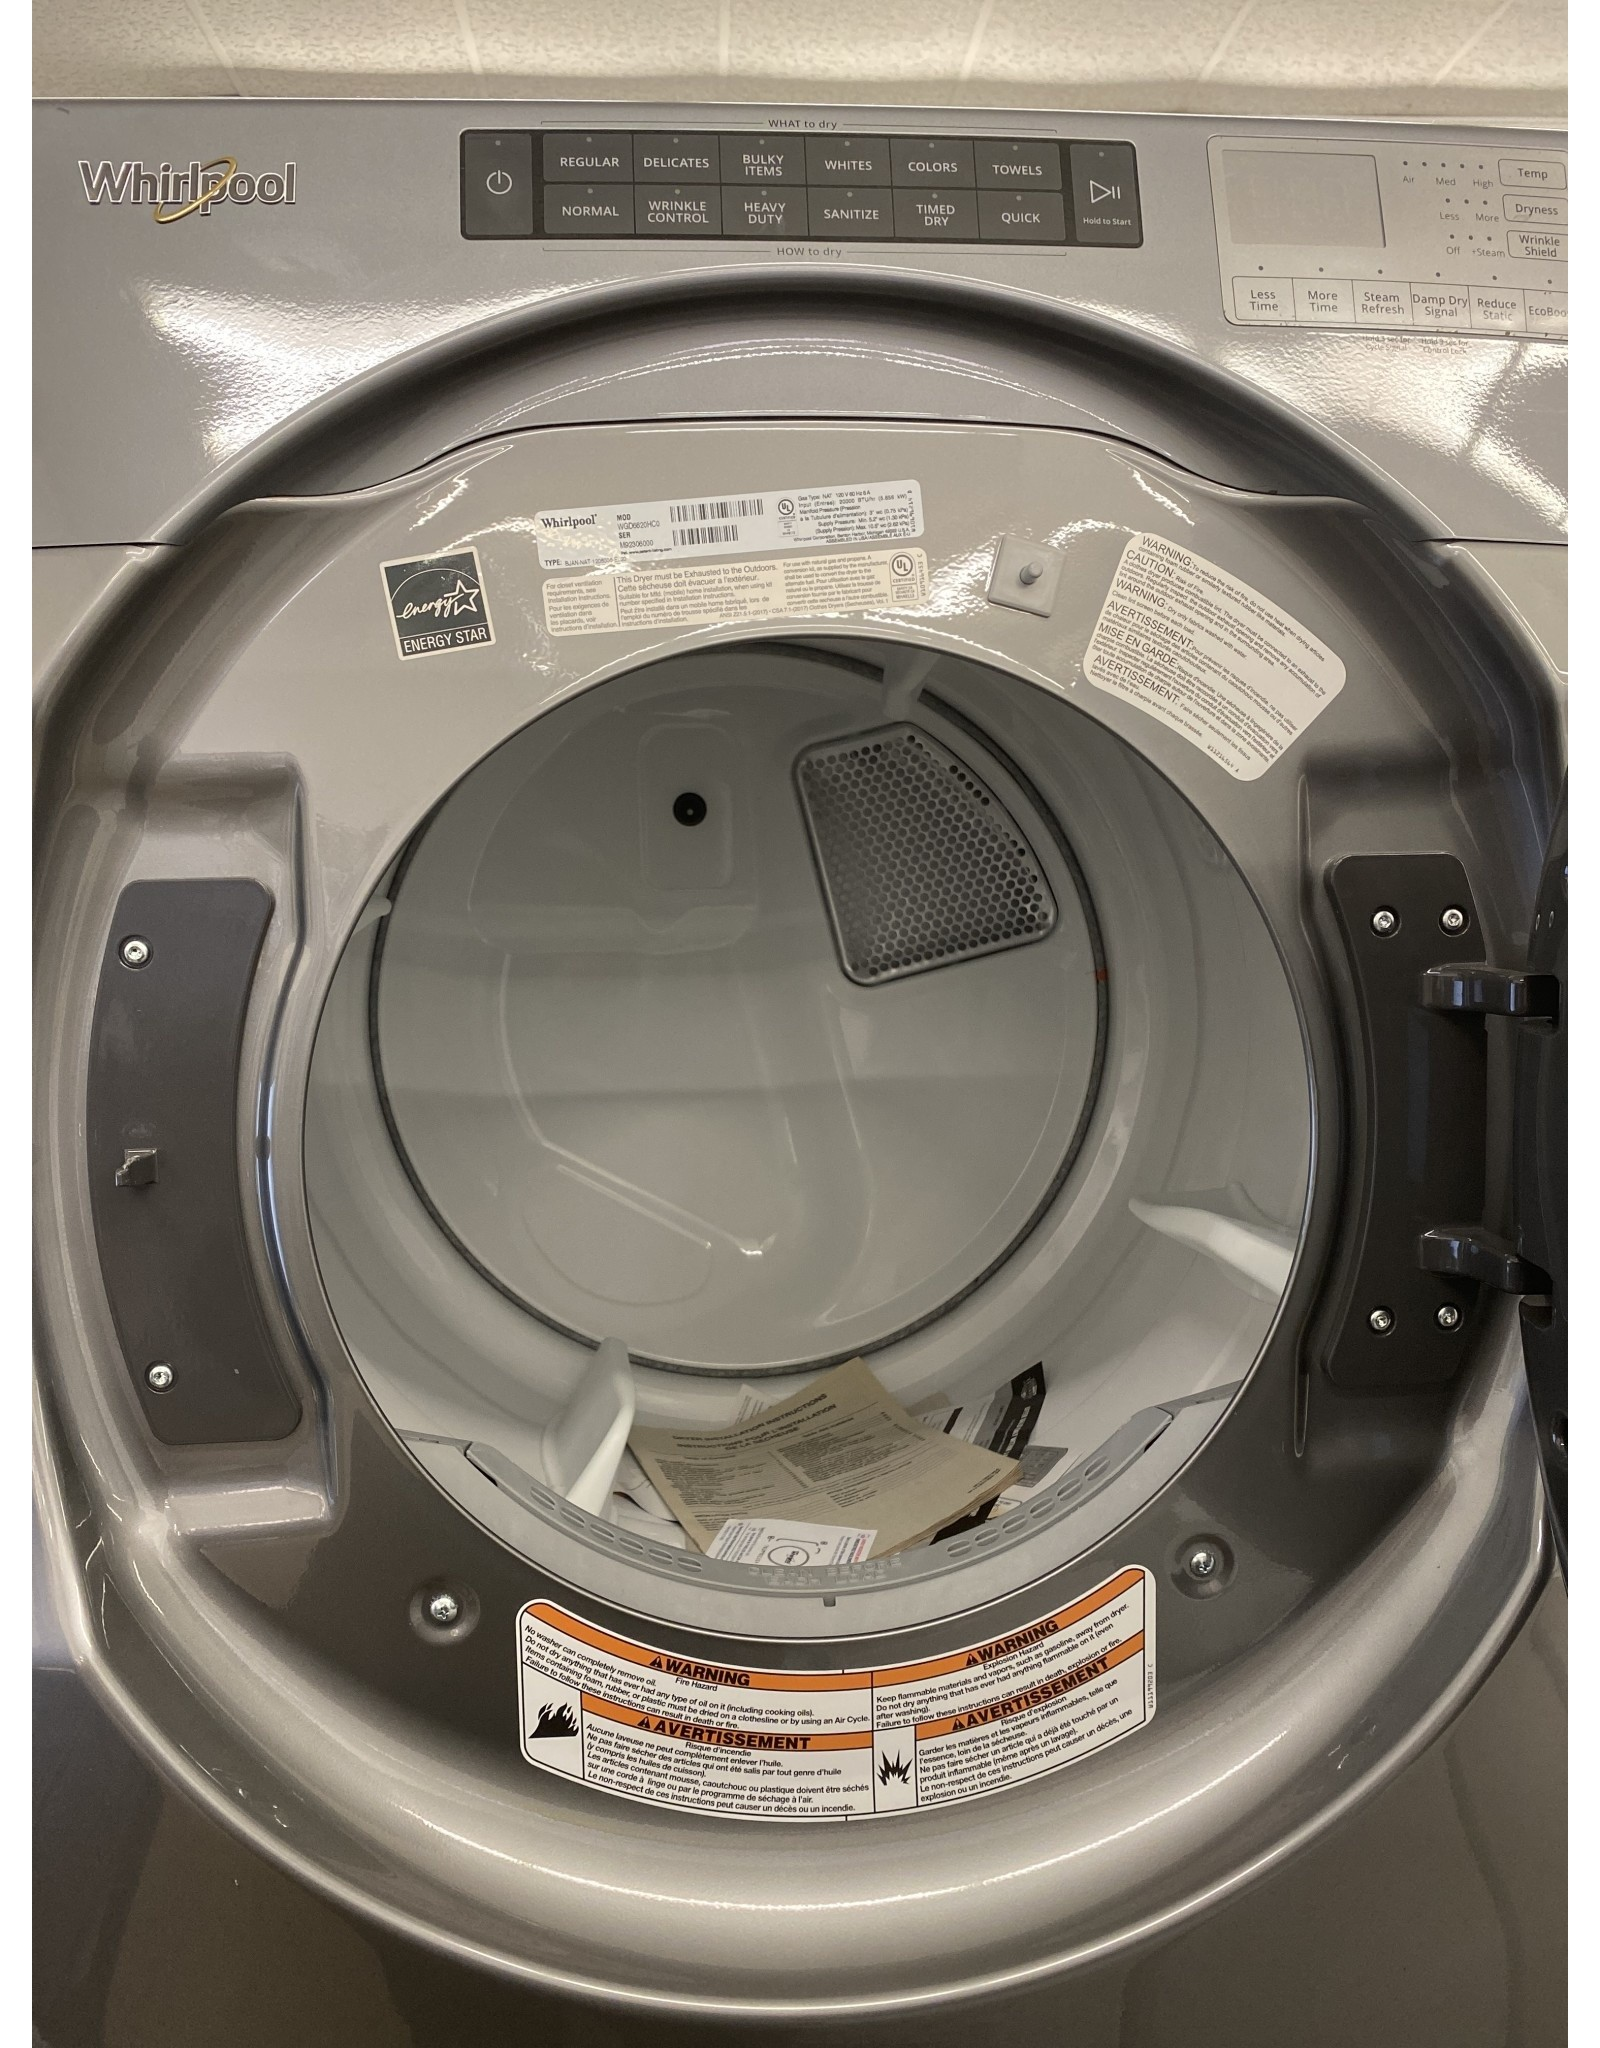 WHIRLPOOL WGD6620HCO 7.4 cu. ft. 120-Volt Chrome Shadow Stackable Gas Vented Dryer with Steam and Intuitive Touch Controls, ENERGY STAR